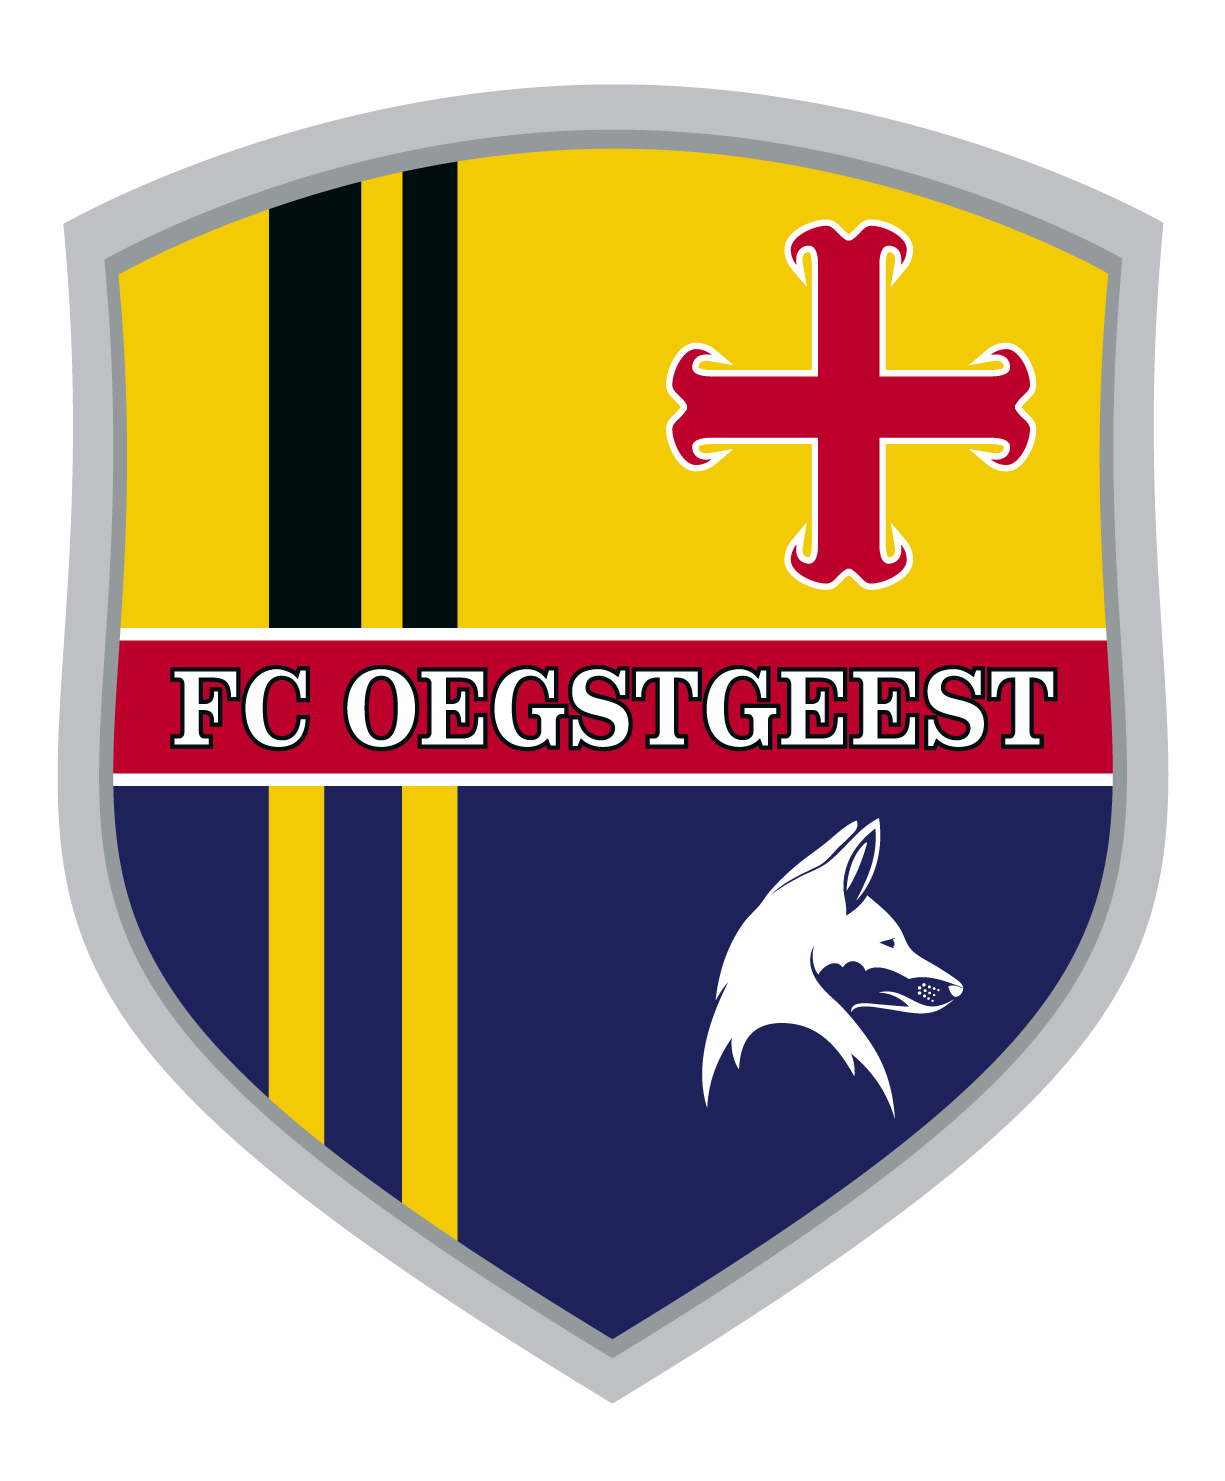 FC Oegstgeest 1 - Overbos 1